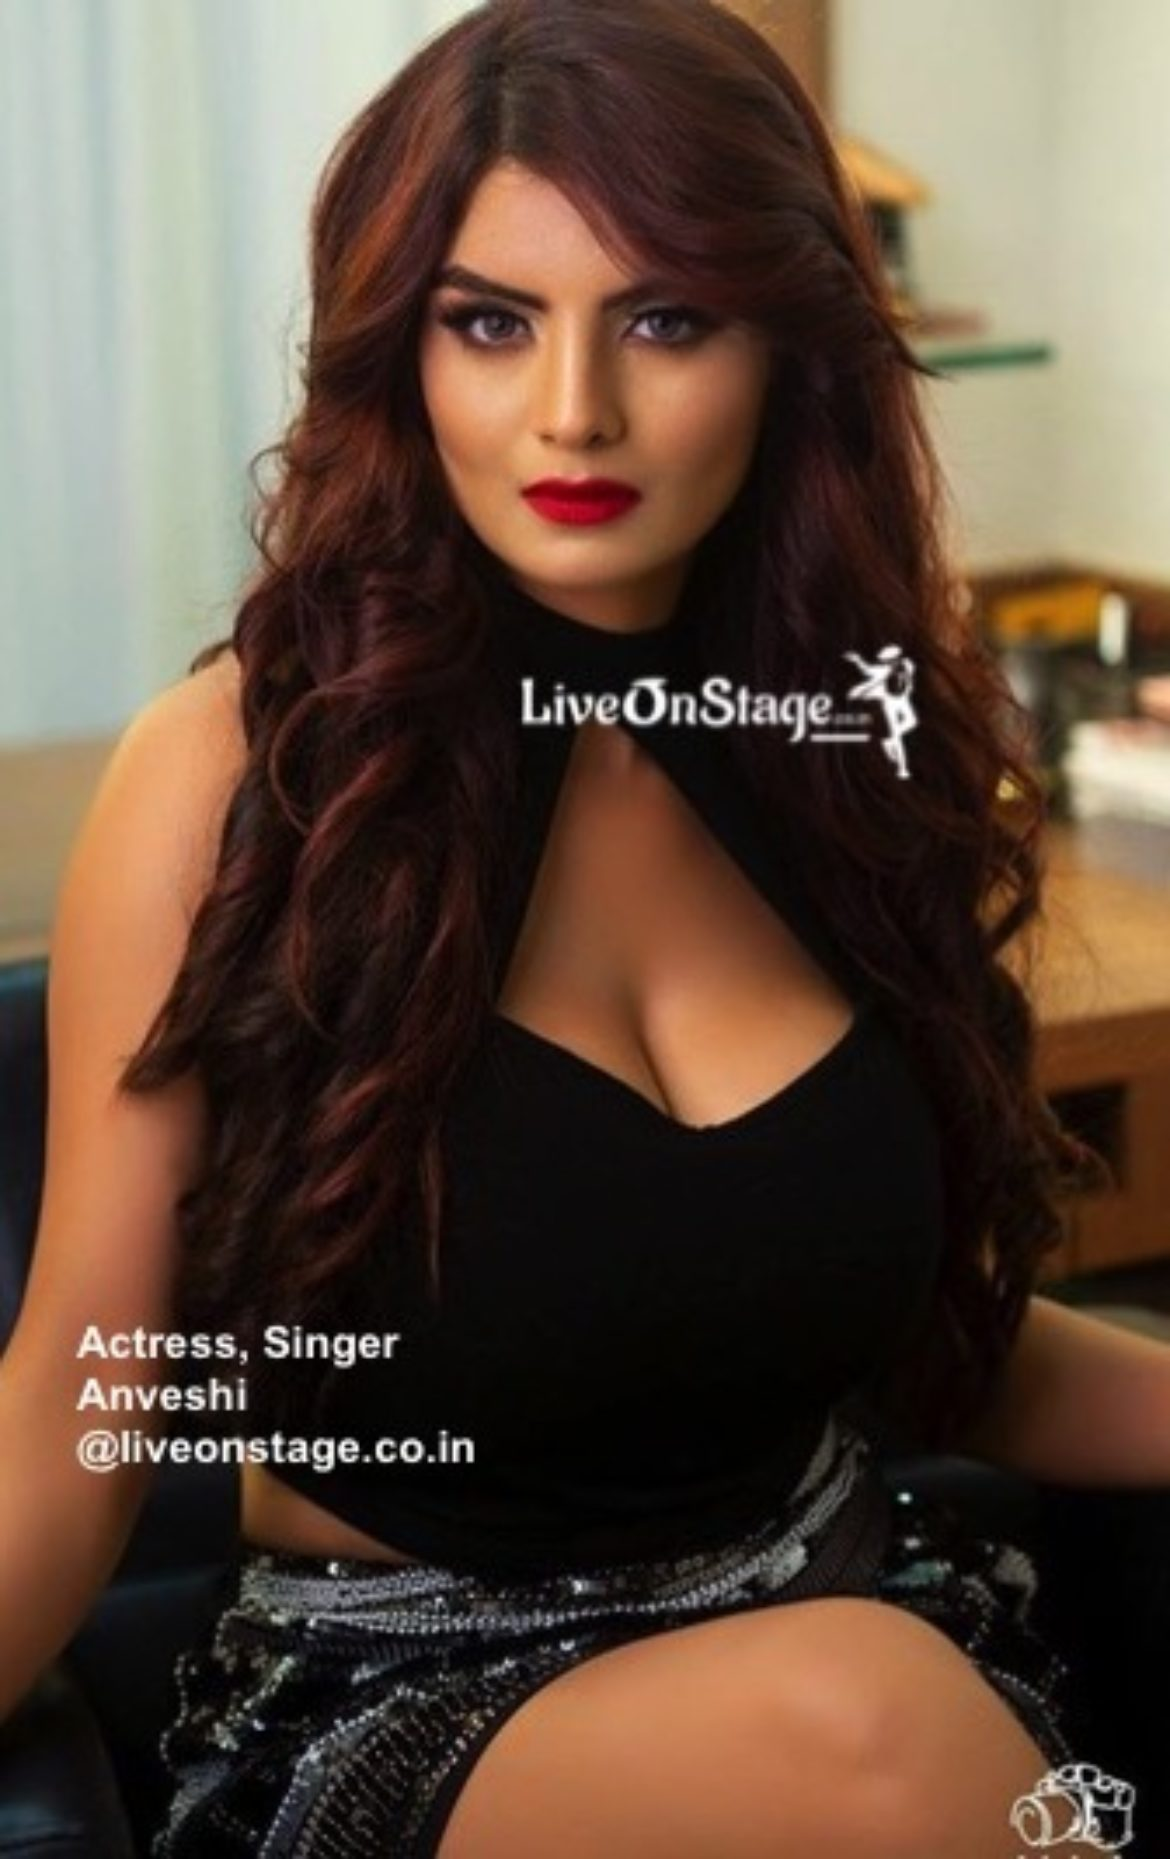 Live On Stage  Bollywood Actress, Singer, Event Host Anveshi-1796